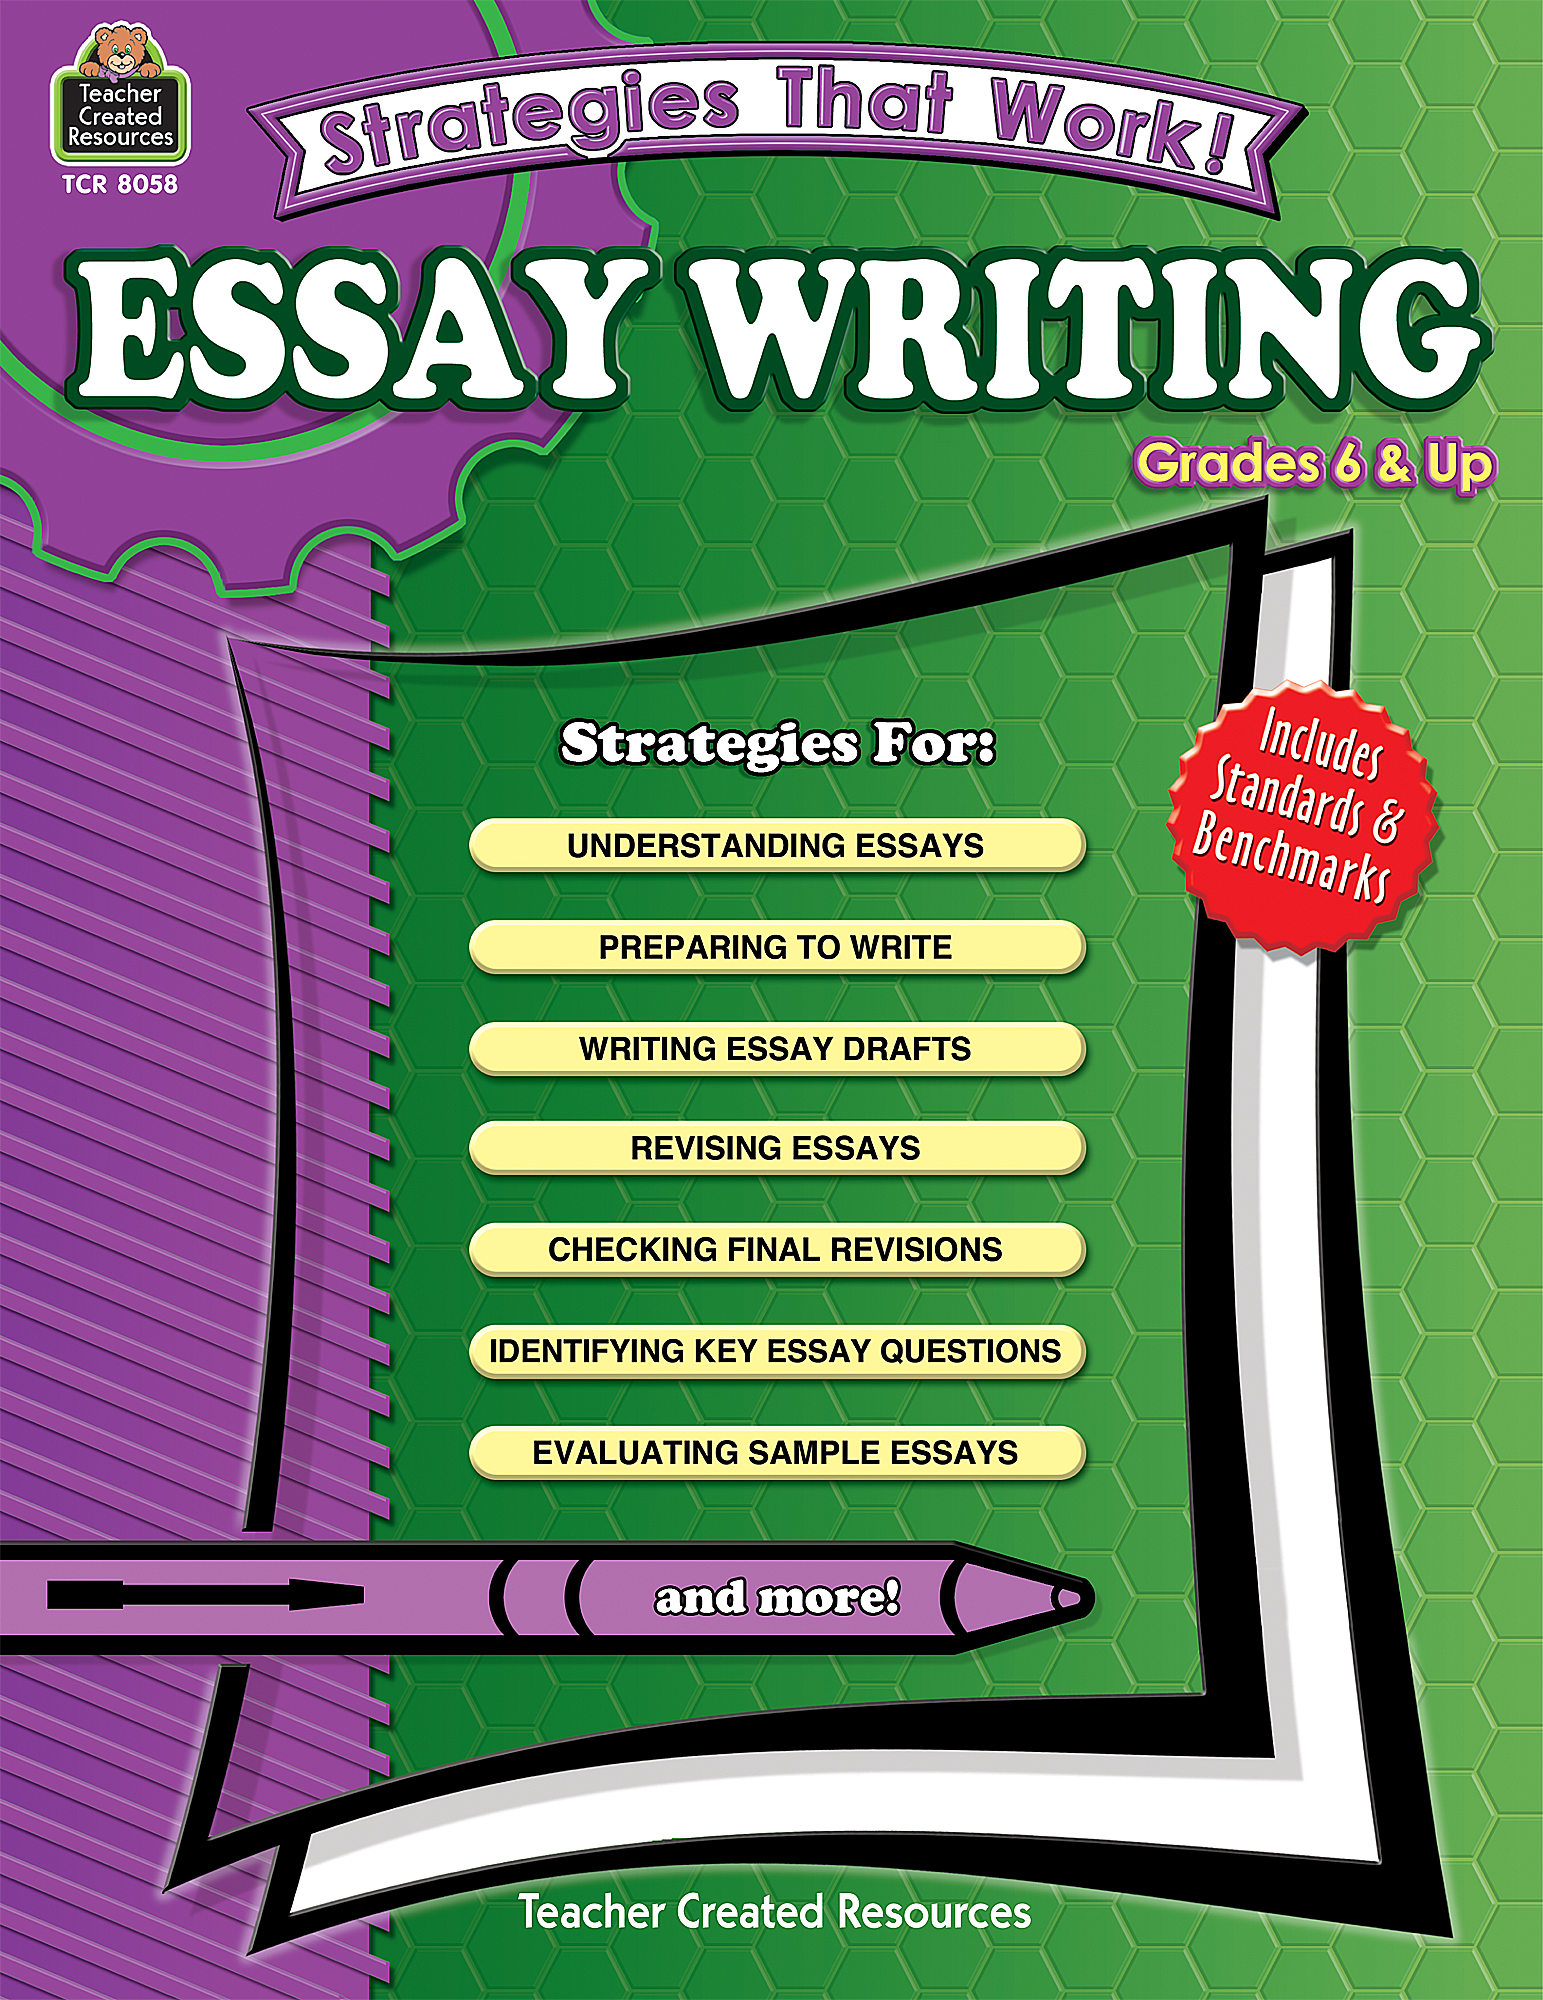 essay writing teaching the basics from the ground up Writing a philosophy essay 1 contents: i basic guidelines  ii some writing tips  make an appointment with the staff of the writing center in he center for t teaching and learning (located in the humanities center) 5 generally, late essays will be accepted up to one week after the due date though points will be deducted for each class.